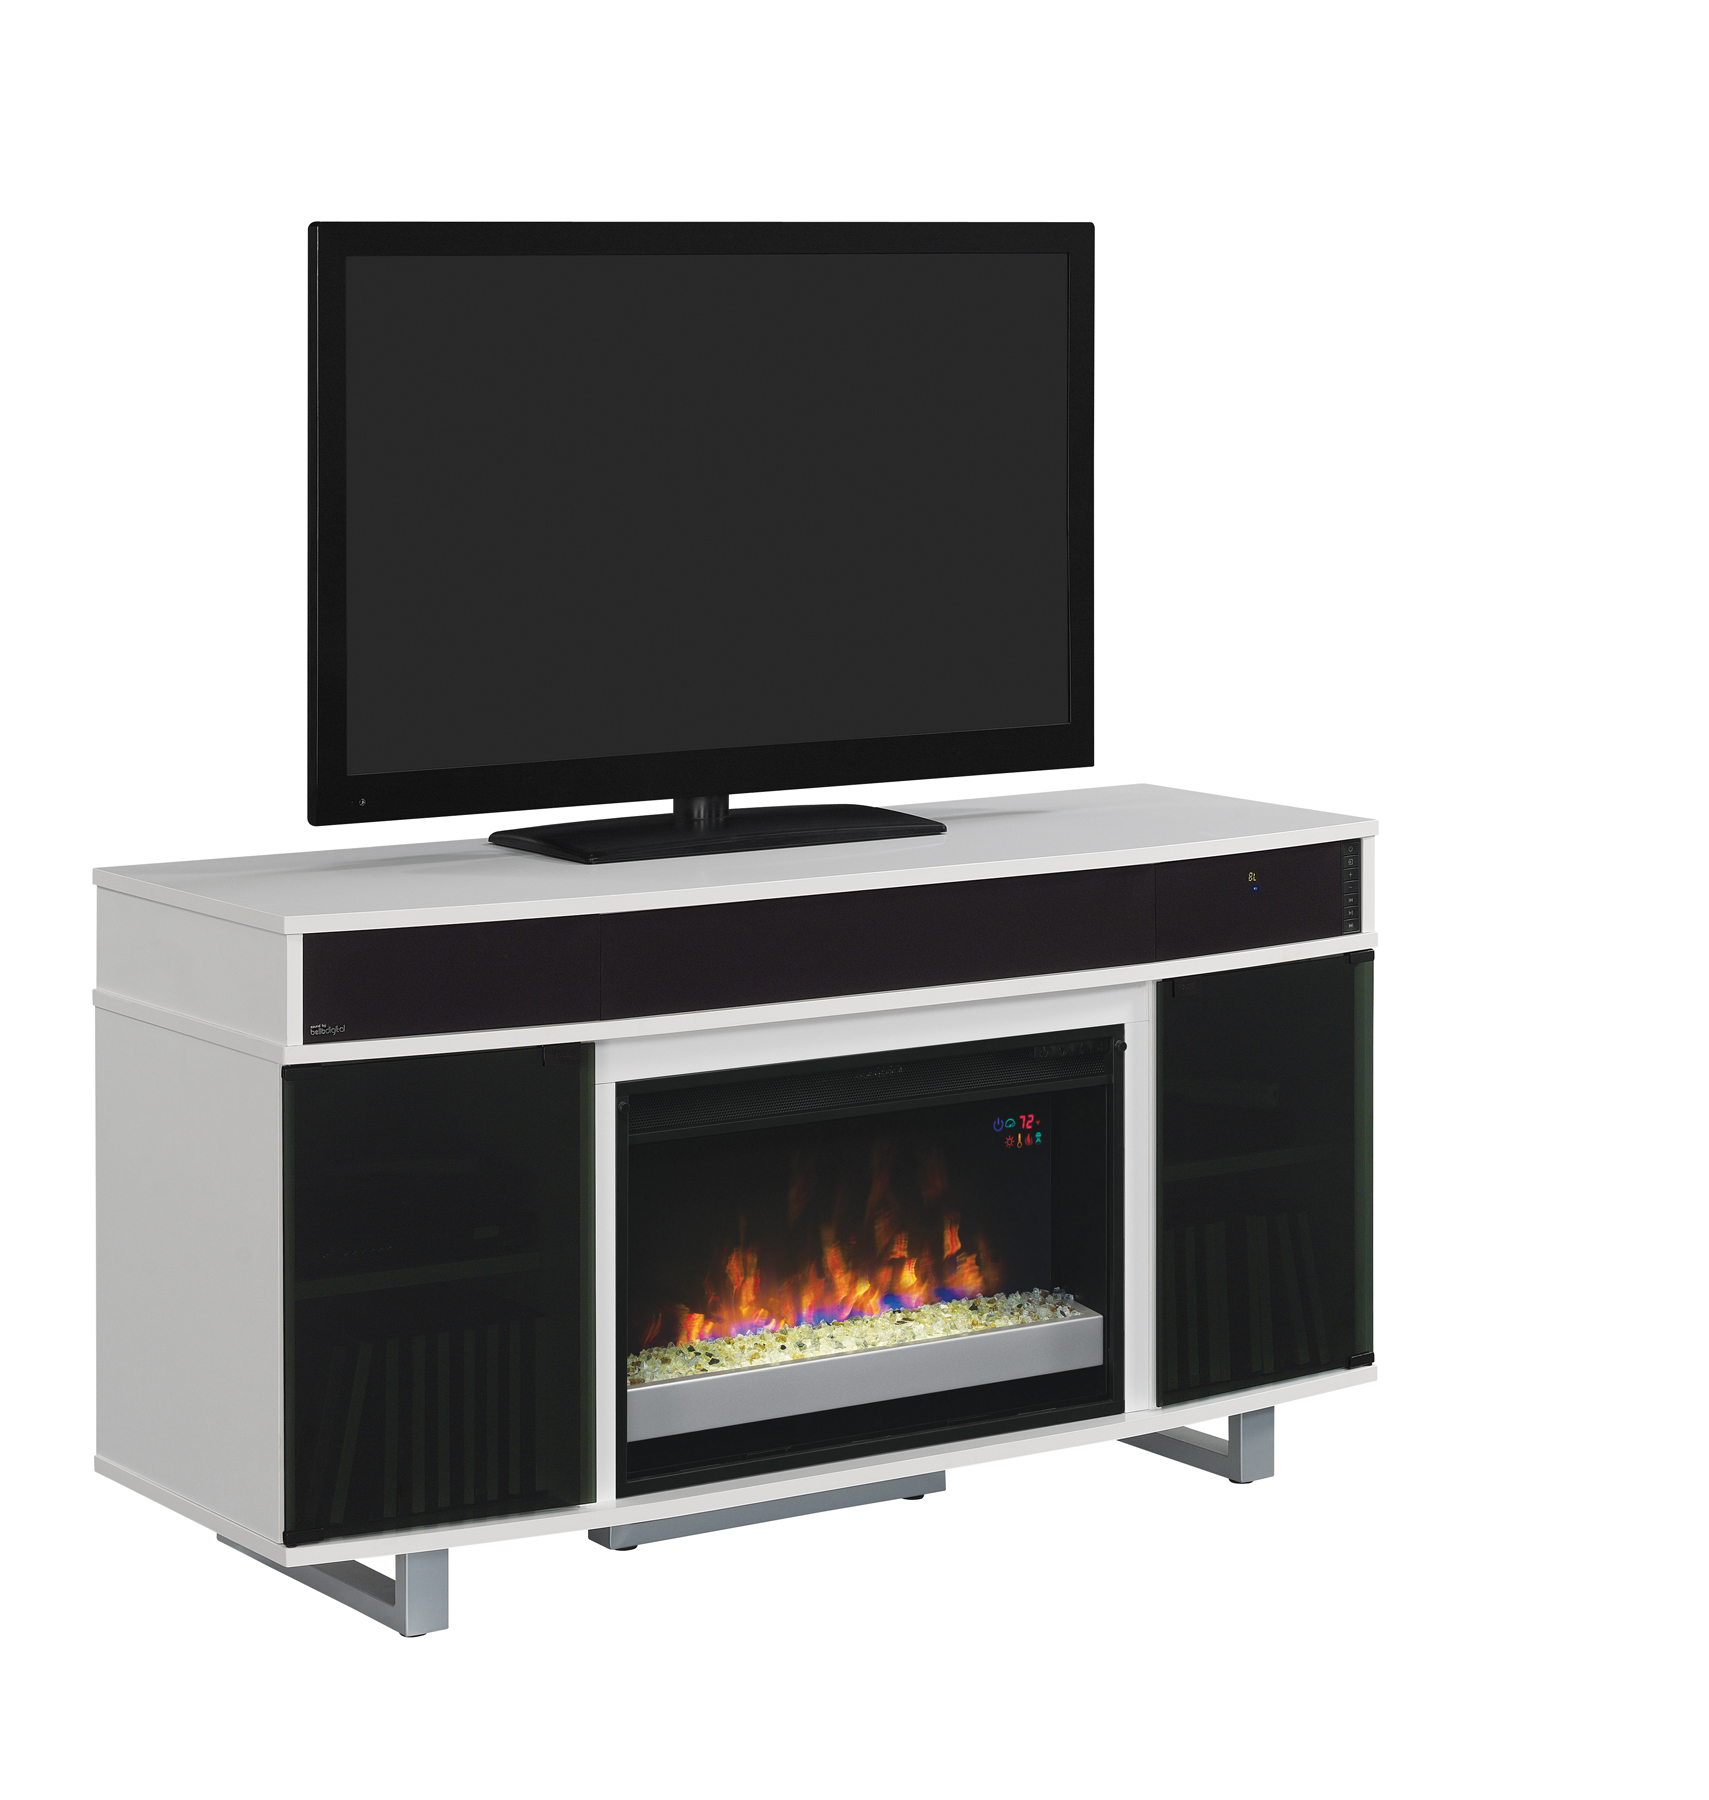 Astonishing 56 New Enterprise High Gloss White Infrared Media Electric Fireplace W Bluetooth Speakers Home Interior And Landscaping Ologienasavecom